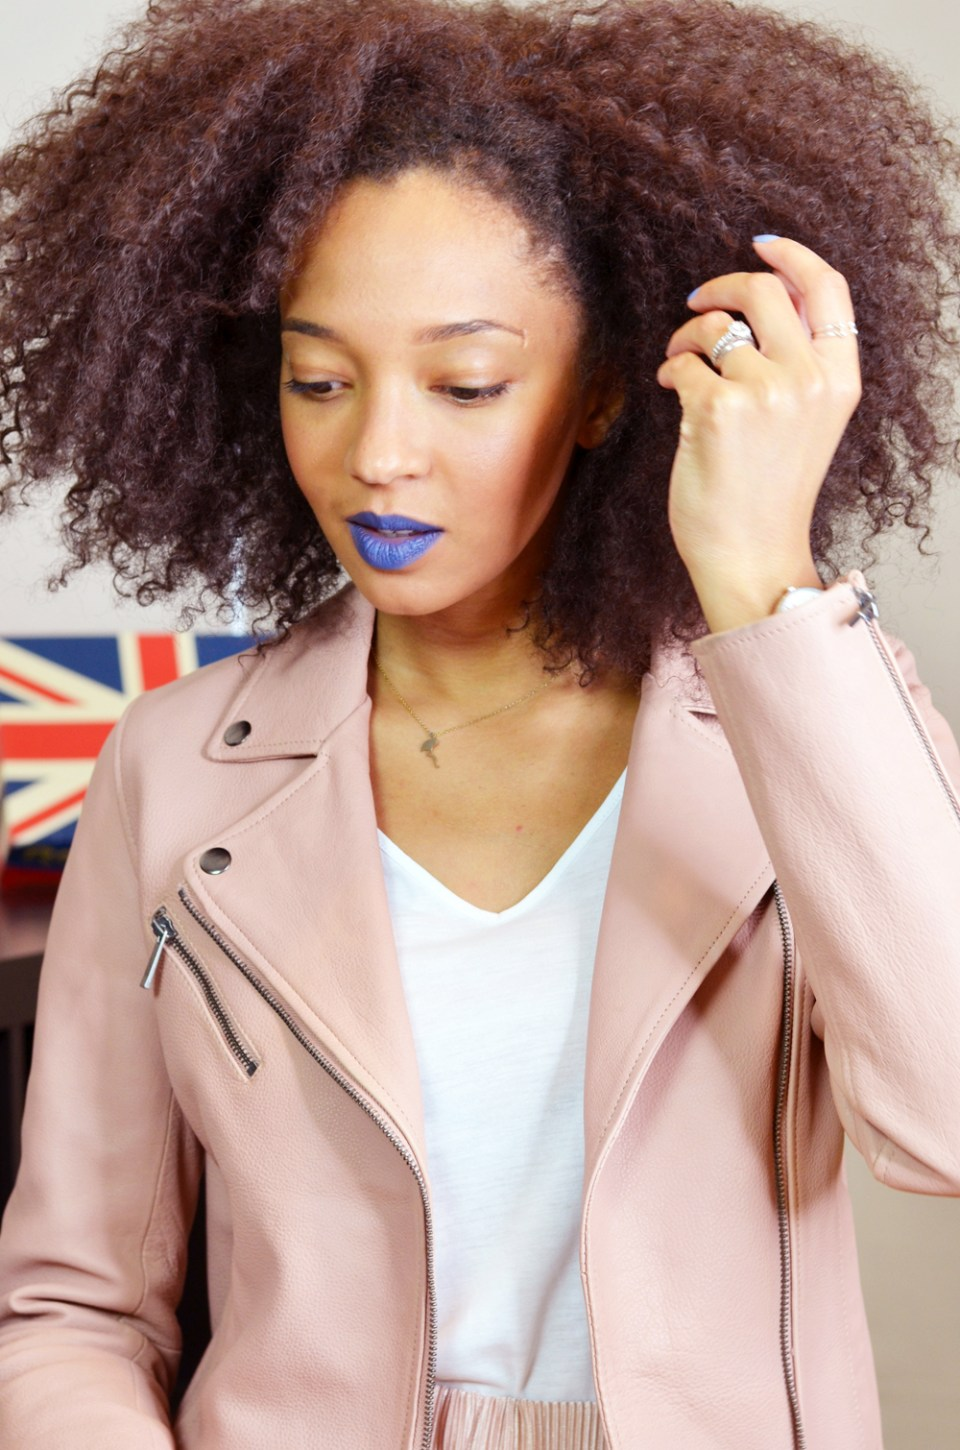 mercredie-blog-mode-suisse-bloggeuse-lacewig-big-beautiful-hair-outre-outfit-nude-leather-perfecto-rose-Indigo-Go-mac-matte-lipstick-blue-daniel-wellington2